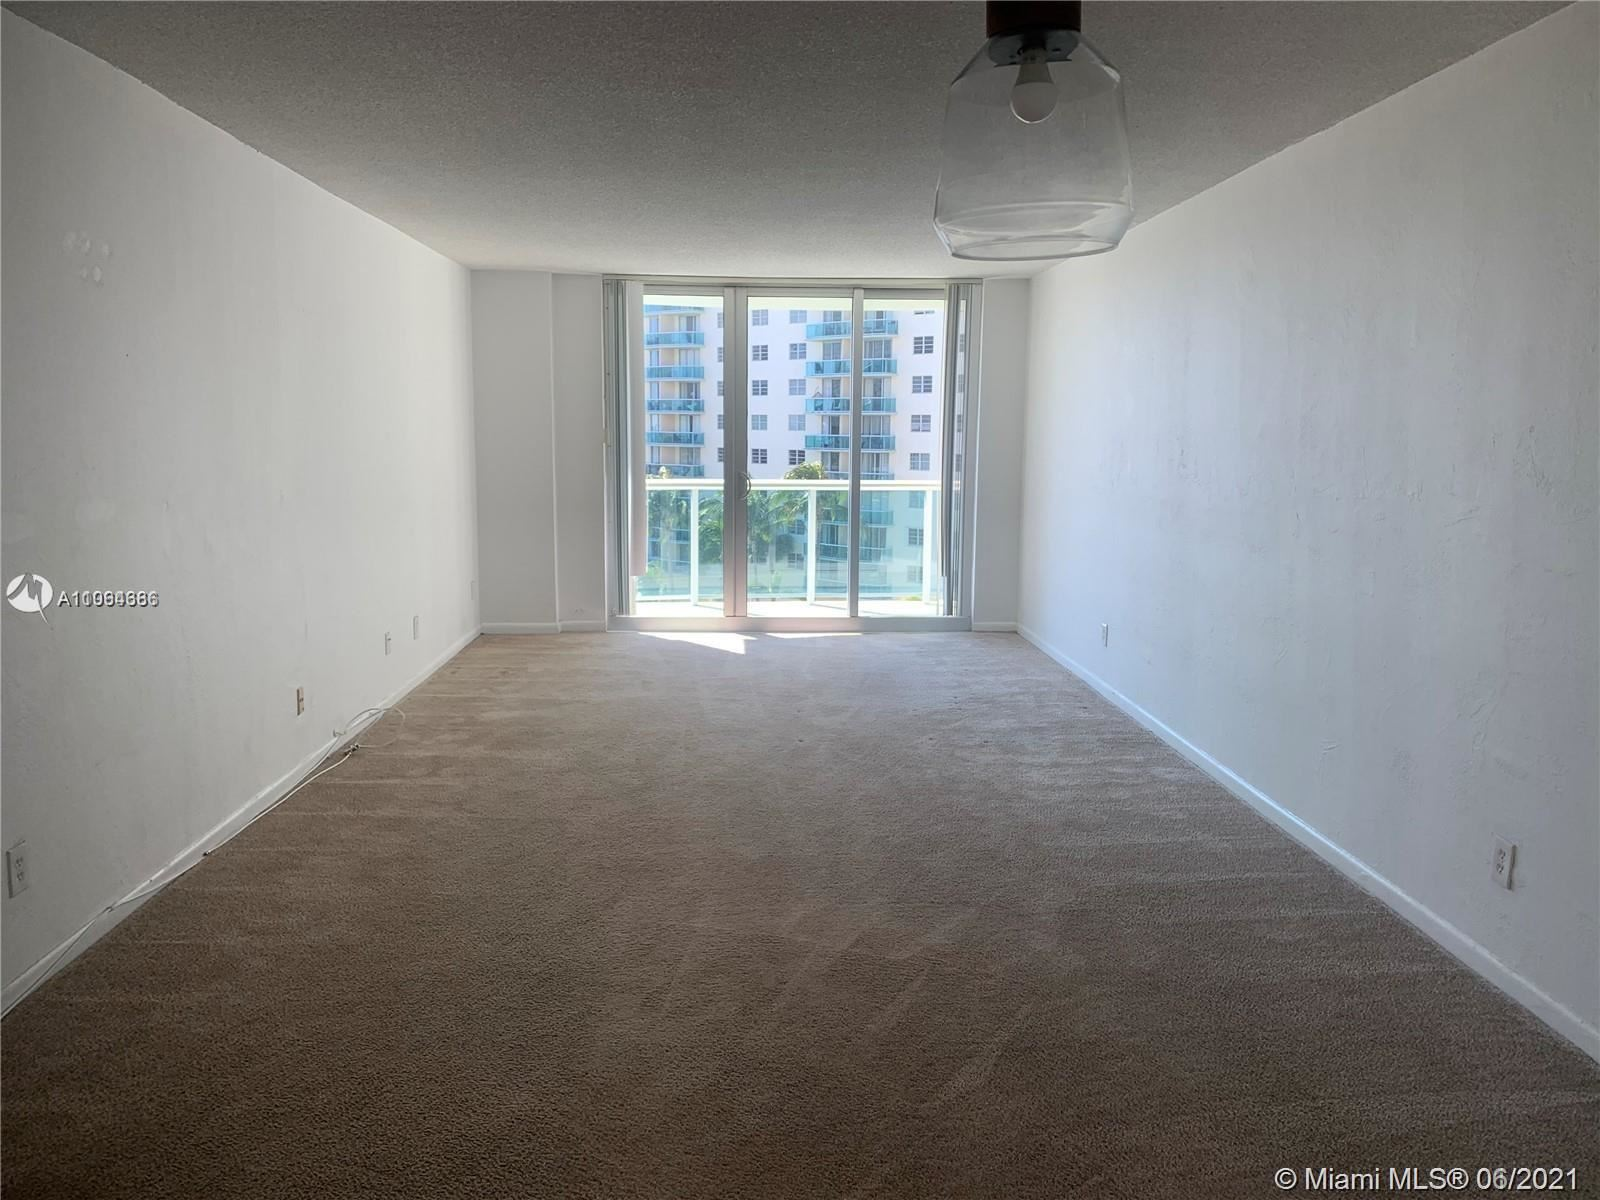 19380 Collins Ave #625, Sunny Isles, FL 33160 - #: A11064666